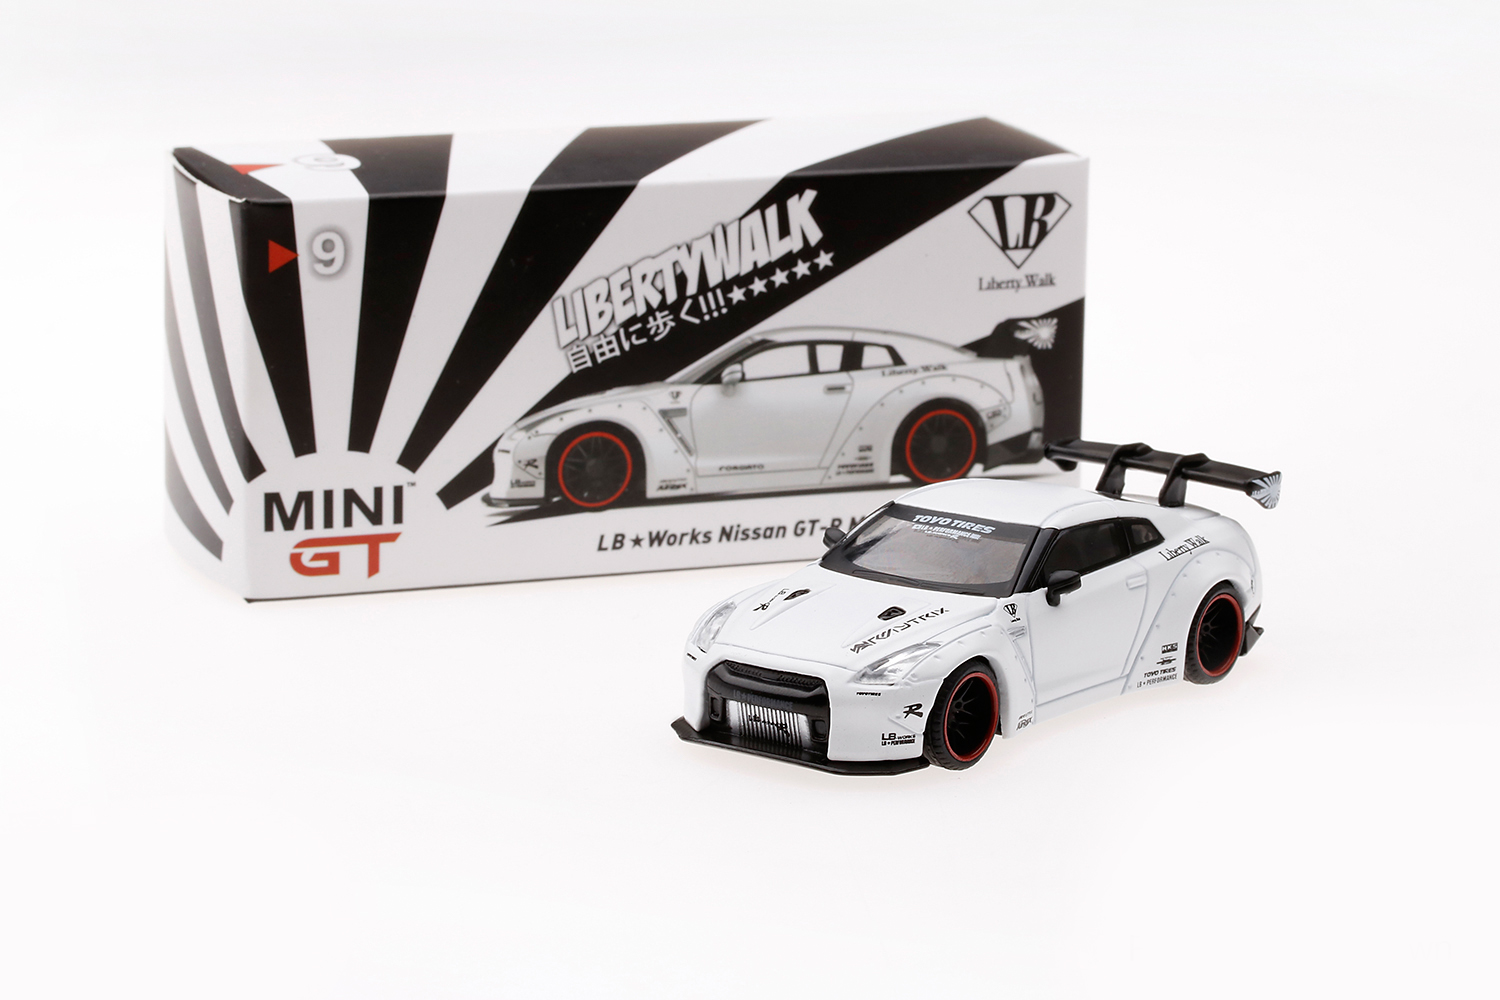 Mini GT 00009-L Liberty Walk Nissan GT-R R35 - Matt Weiß 1:64